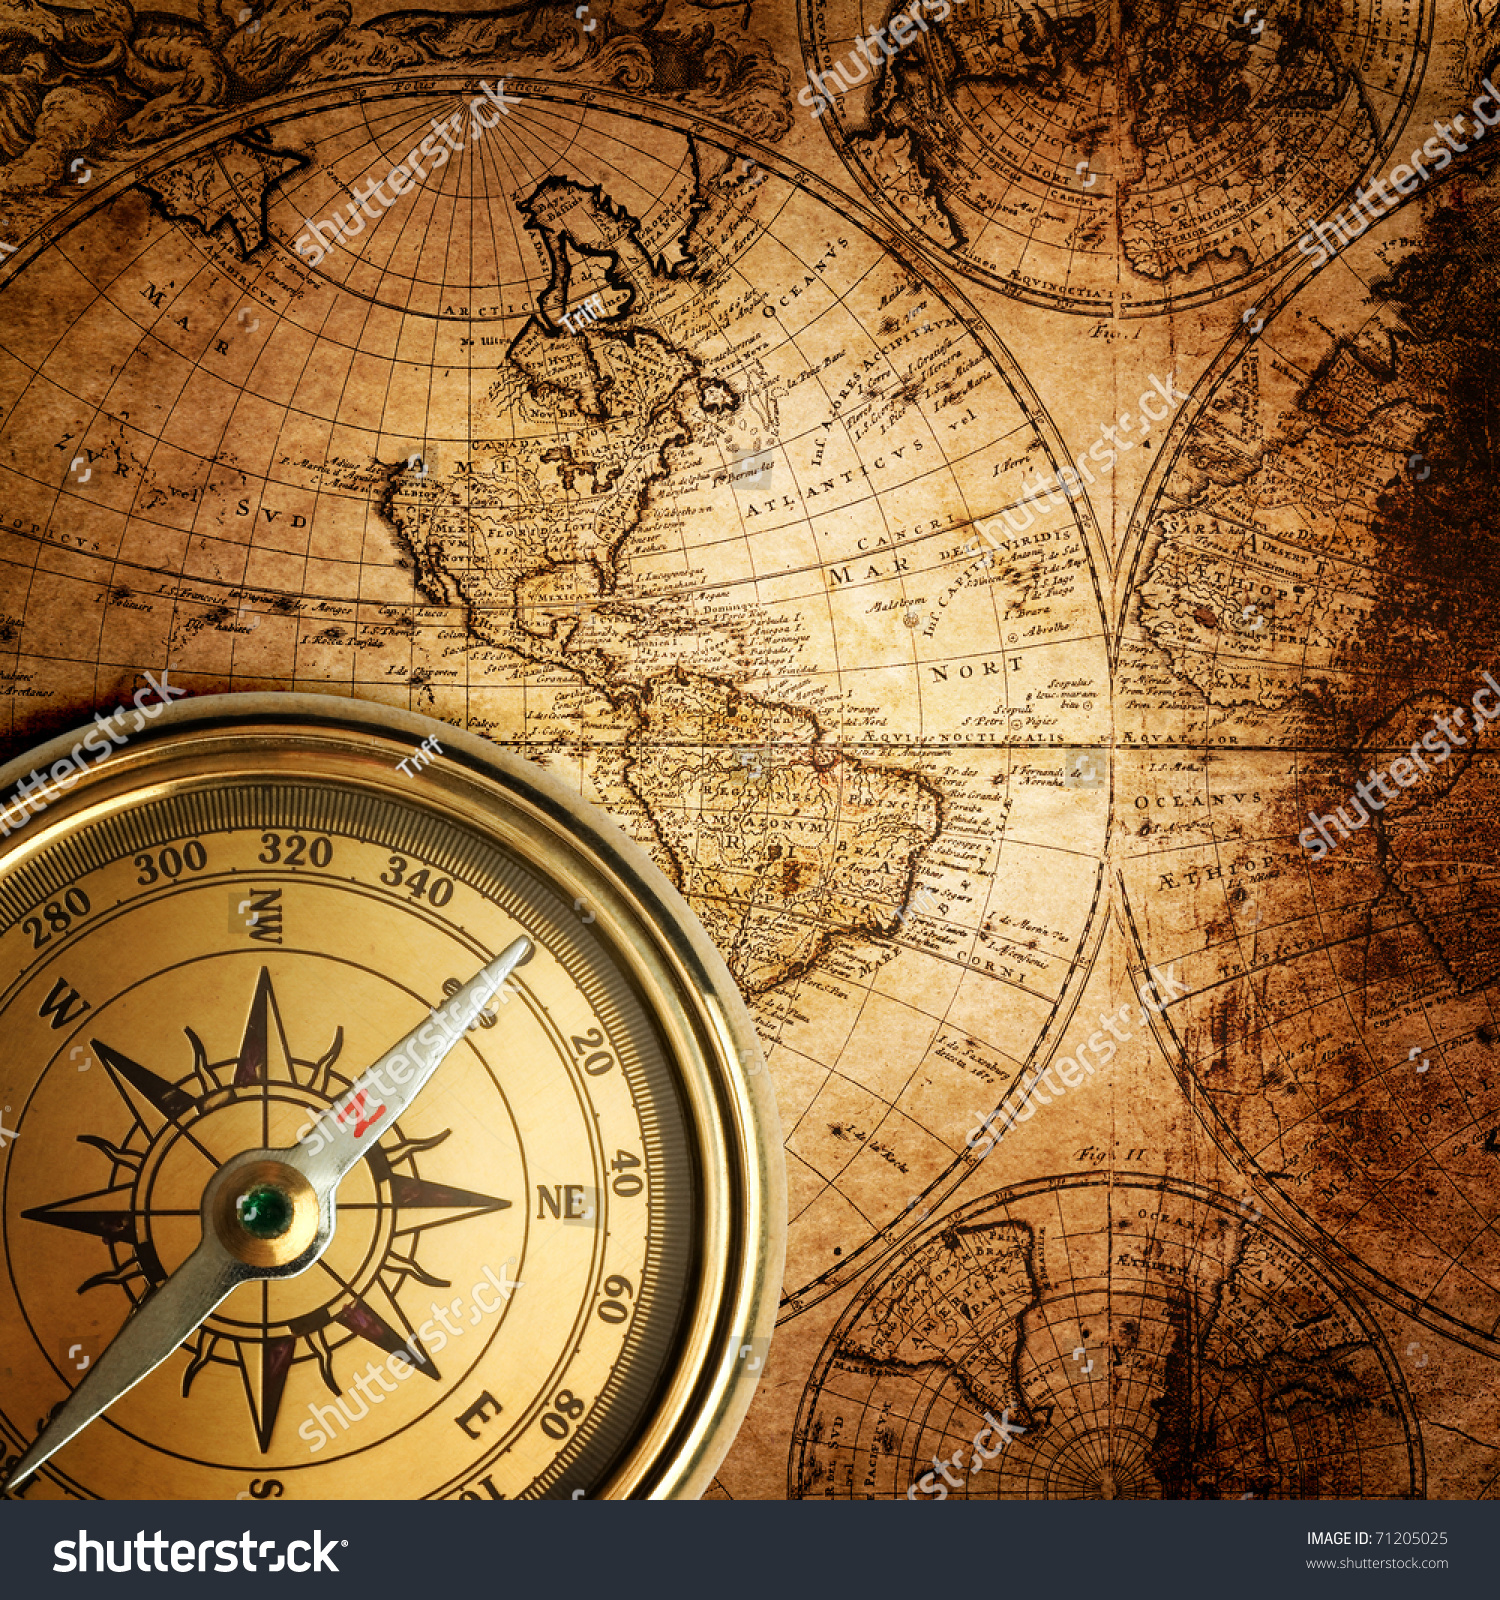 Old World Compass Wallpaper – Daily Motivational Quotes